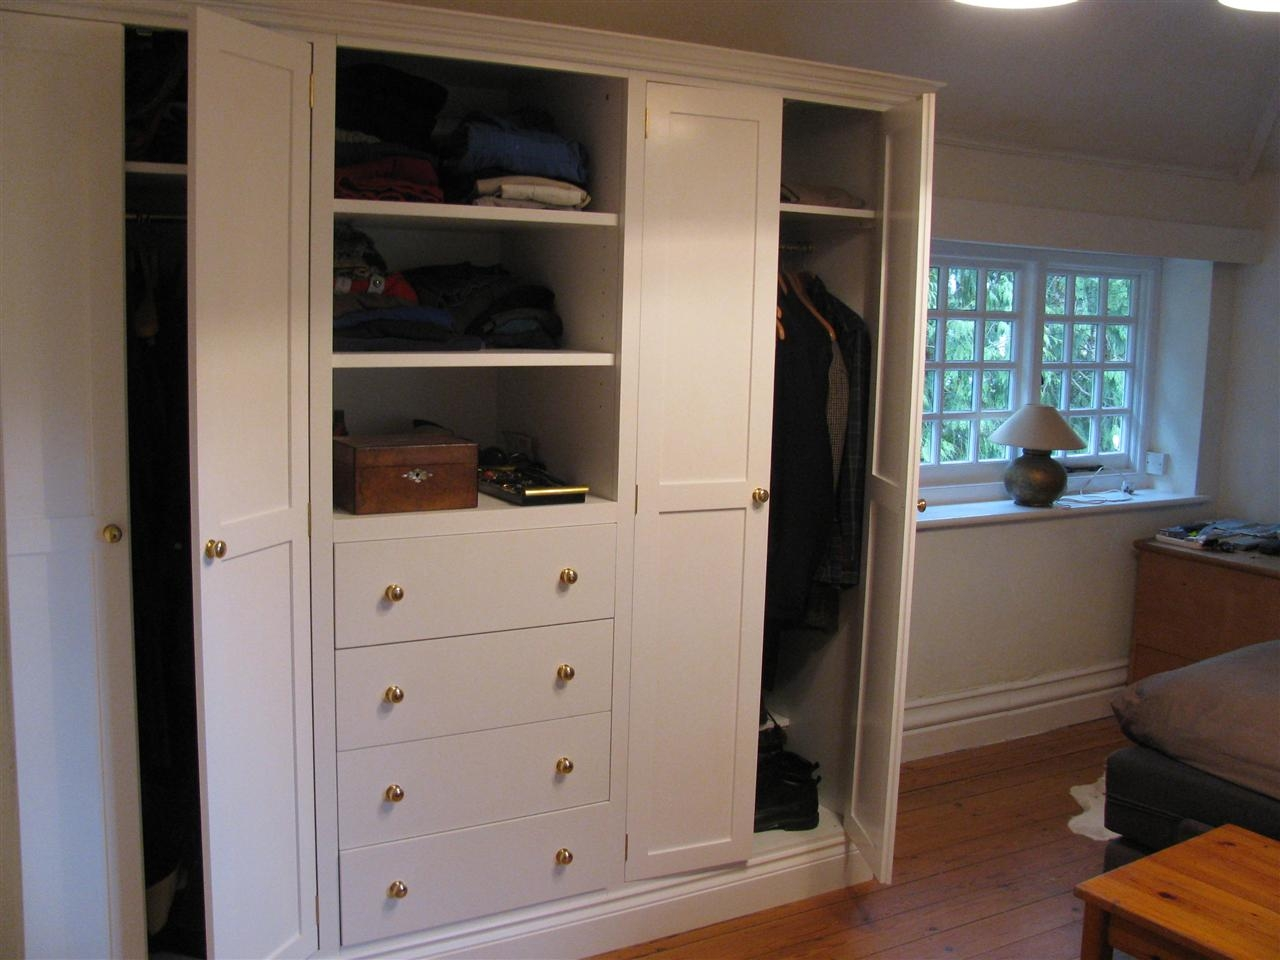 Wardrobes Regarding Wardrobes With Drawers And Shelves (Image 14 of 15)